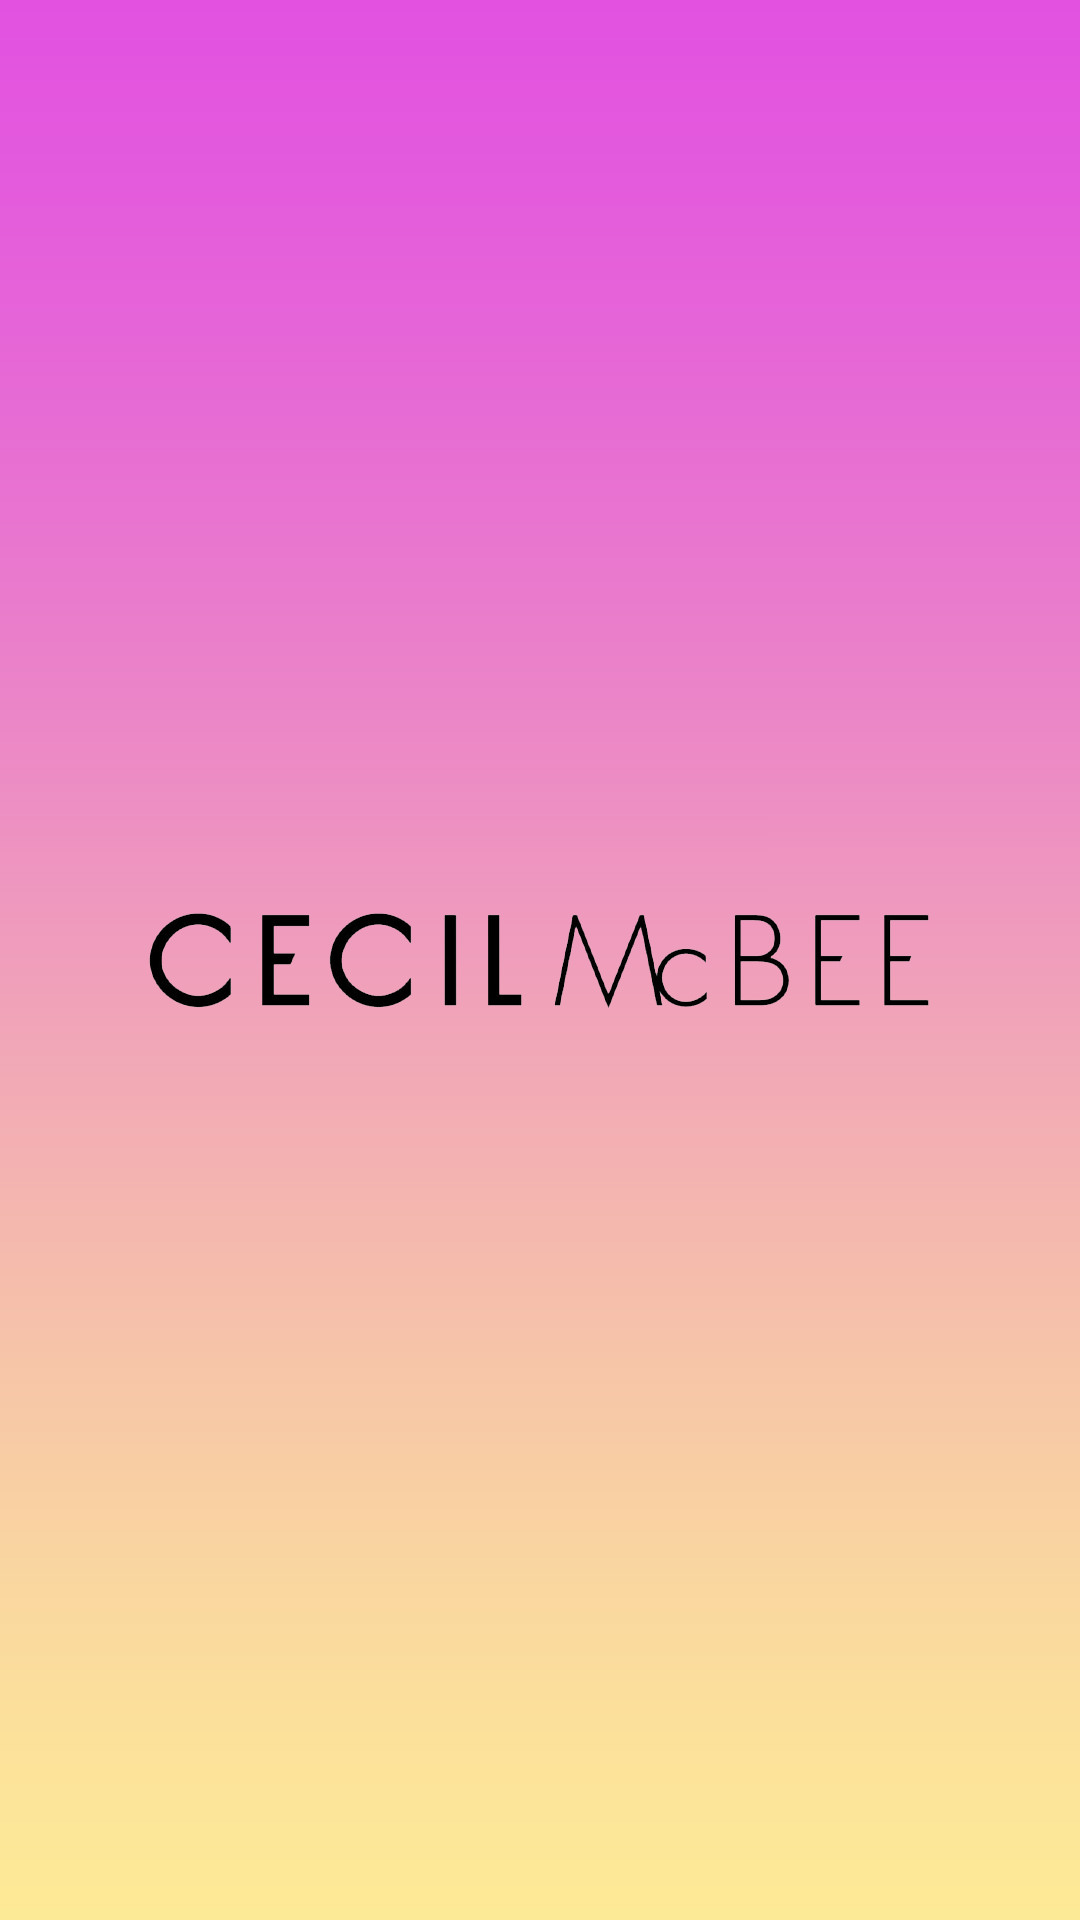 cecil00009 - セシルマクビー[CECIL McBEE]の高画質スマホ壁紙23枚 [iPhone&Androidに対応]